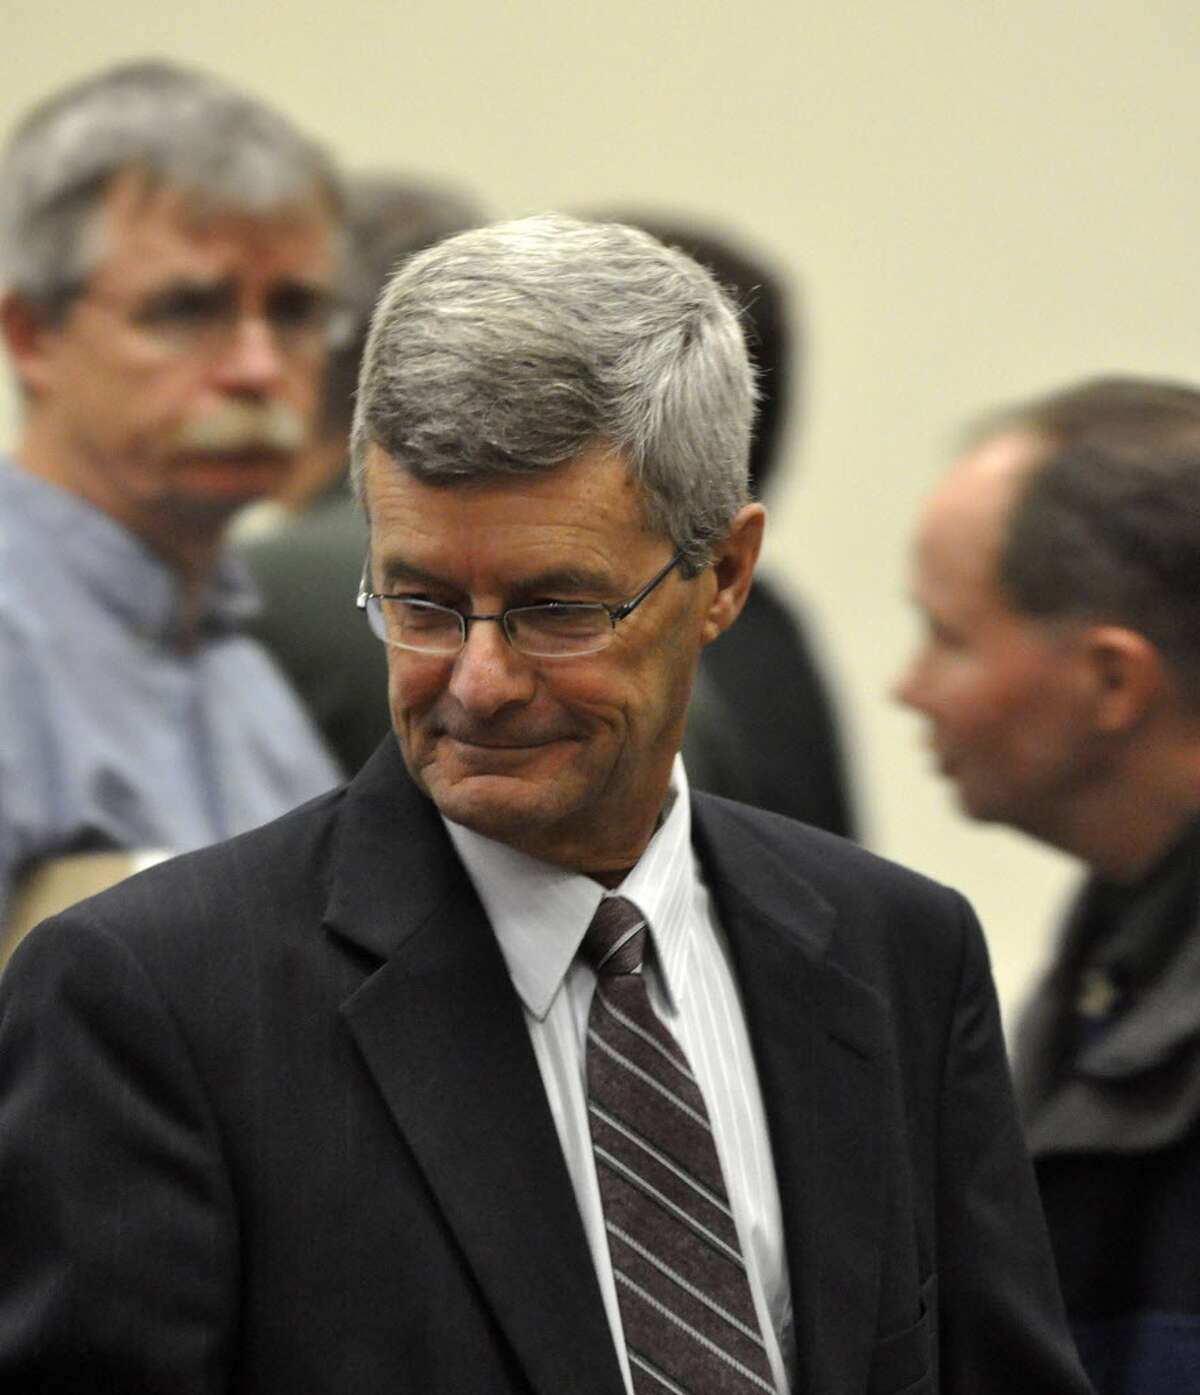 Gary Mercure, a former Catholic Priest from the Albany, N.Y. Diocese, stands trial in Berkshre County Massachusetts on charges of raping and molesting two former altar boys in the 1980s, Wednesday Feb 9, 2011, Pittsfield, Mass. (AP Photo/The Berkshire Eagle, Ben Garver/archive)